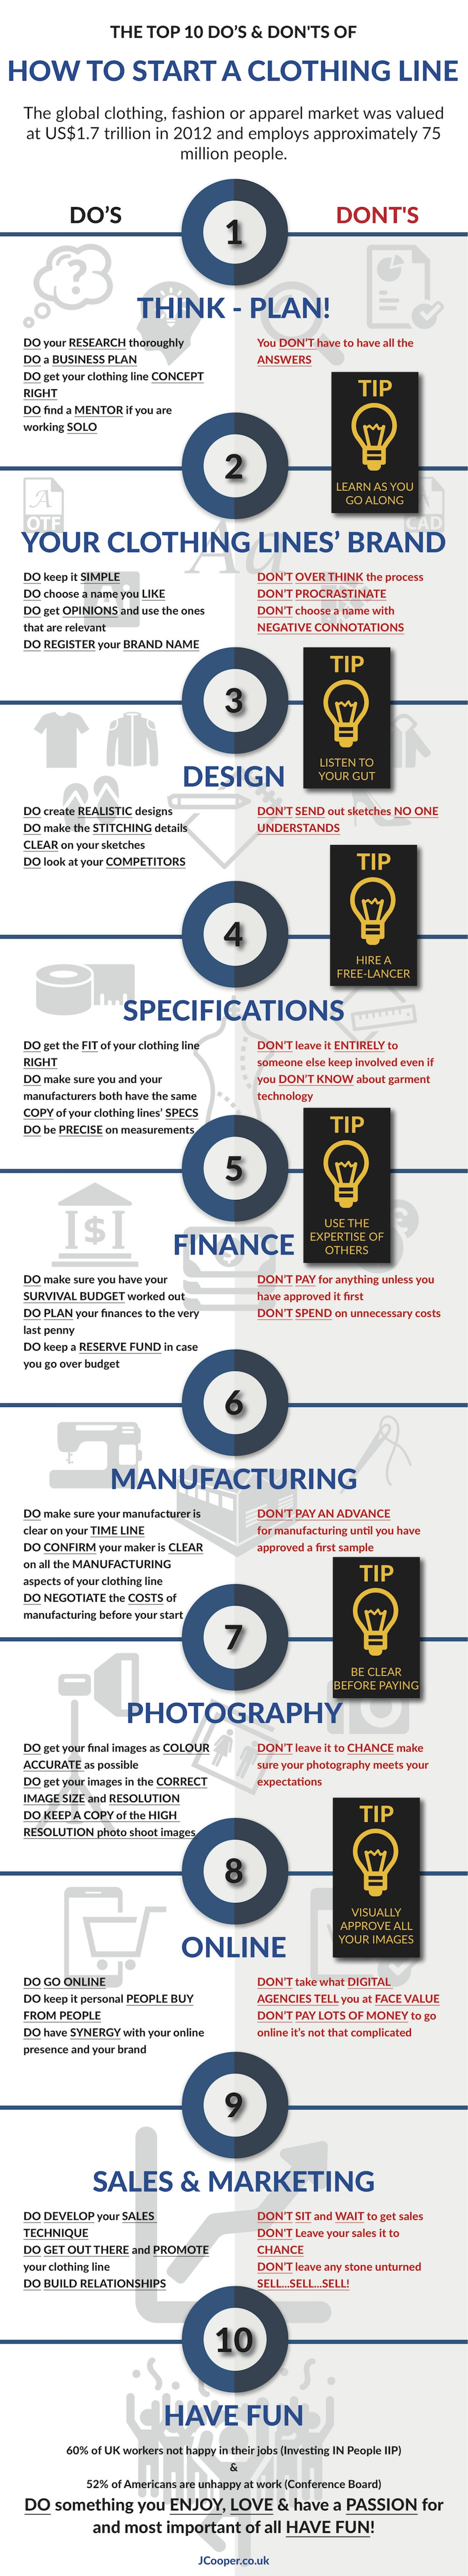 How To Start A Clothing Line: Top 10 Do's And Dont's Infographic